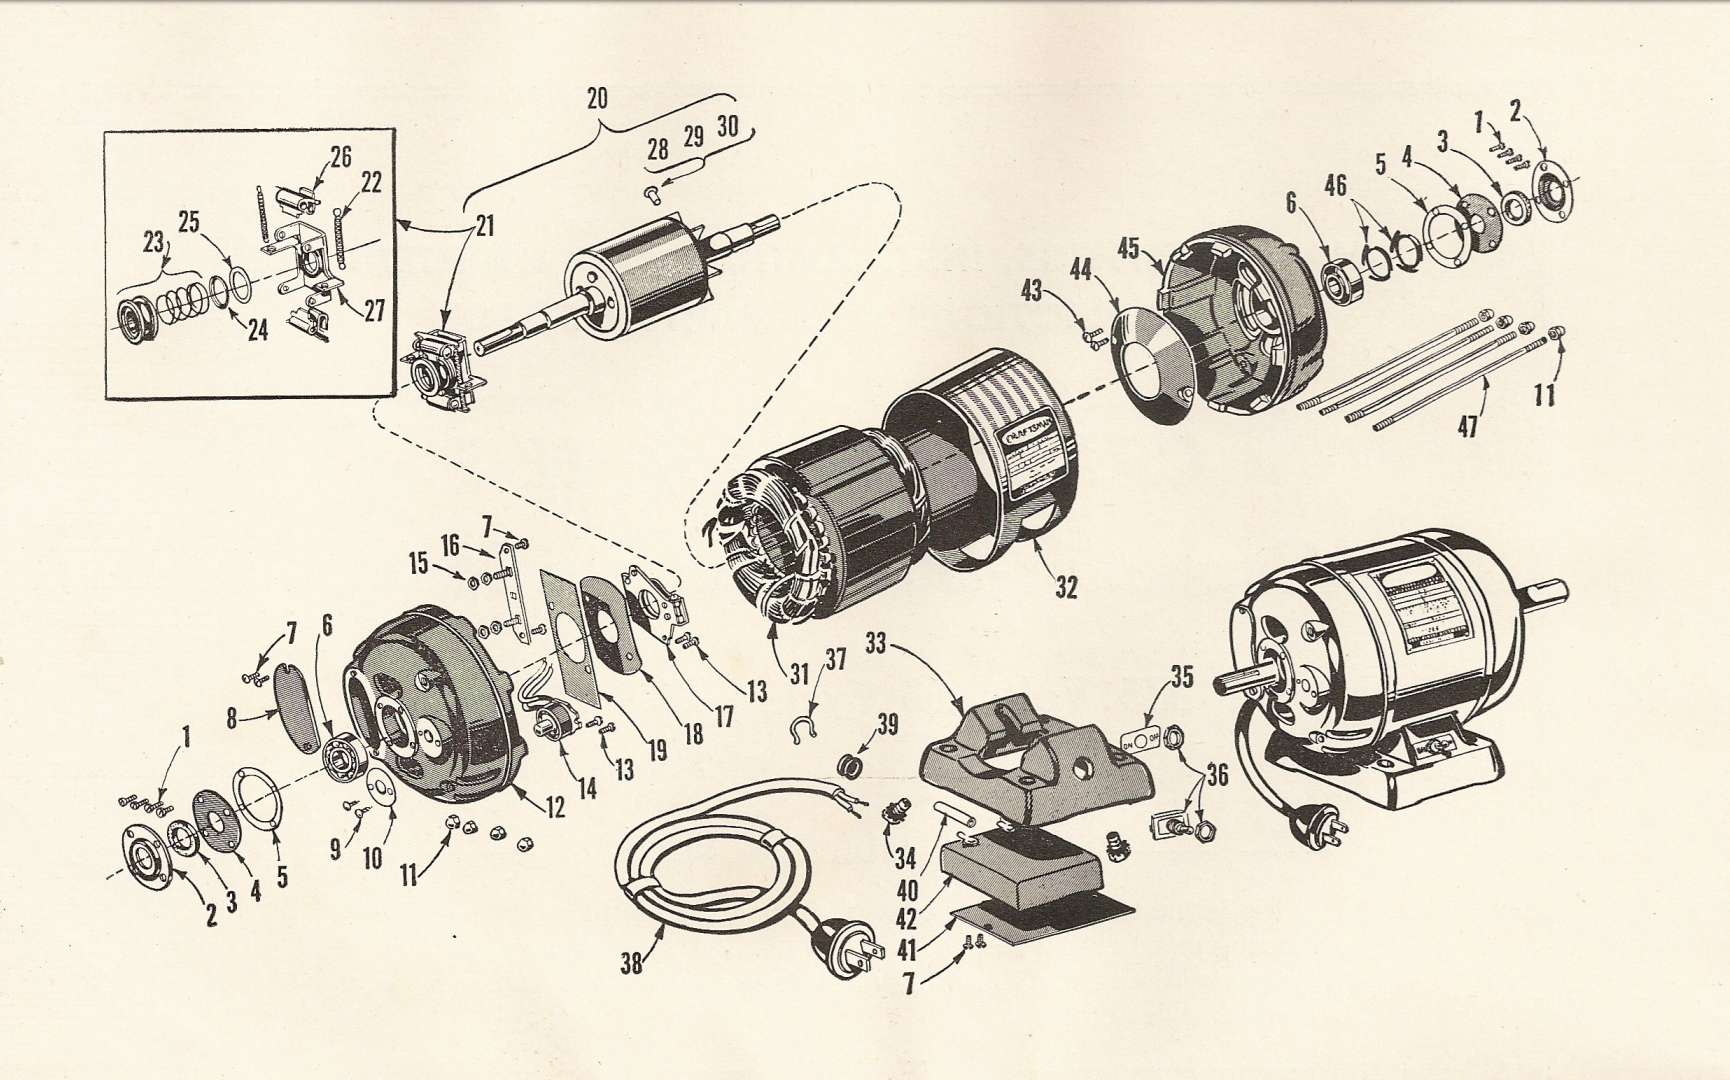 Craftsman 1156962 Motor Restoration Part 2 Michael Parrish Blog Electric Drill Wiring Diagram 1 Hp Capacitor Start Source